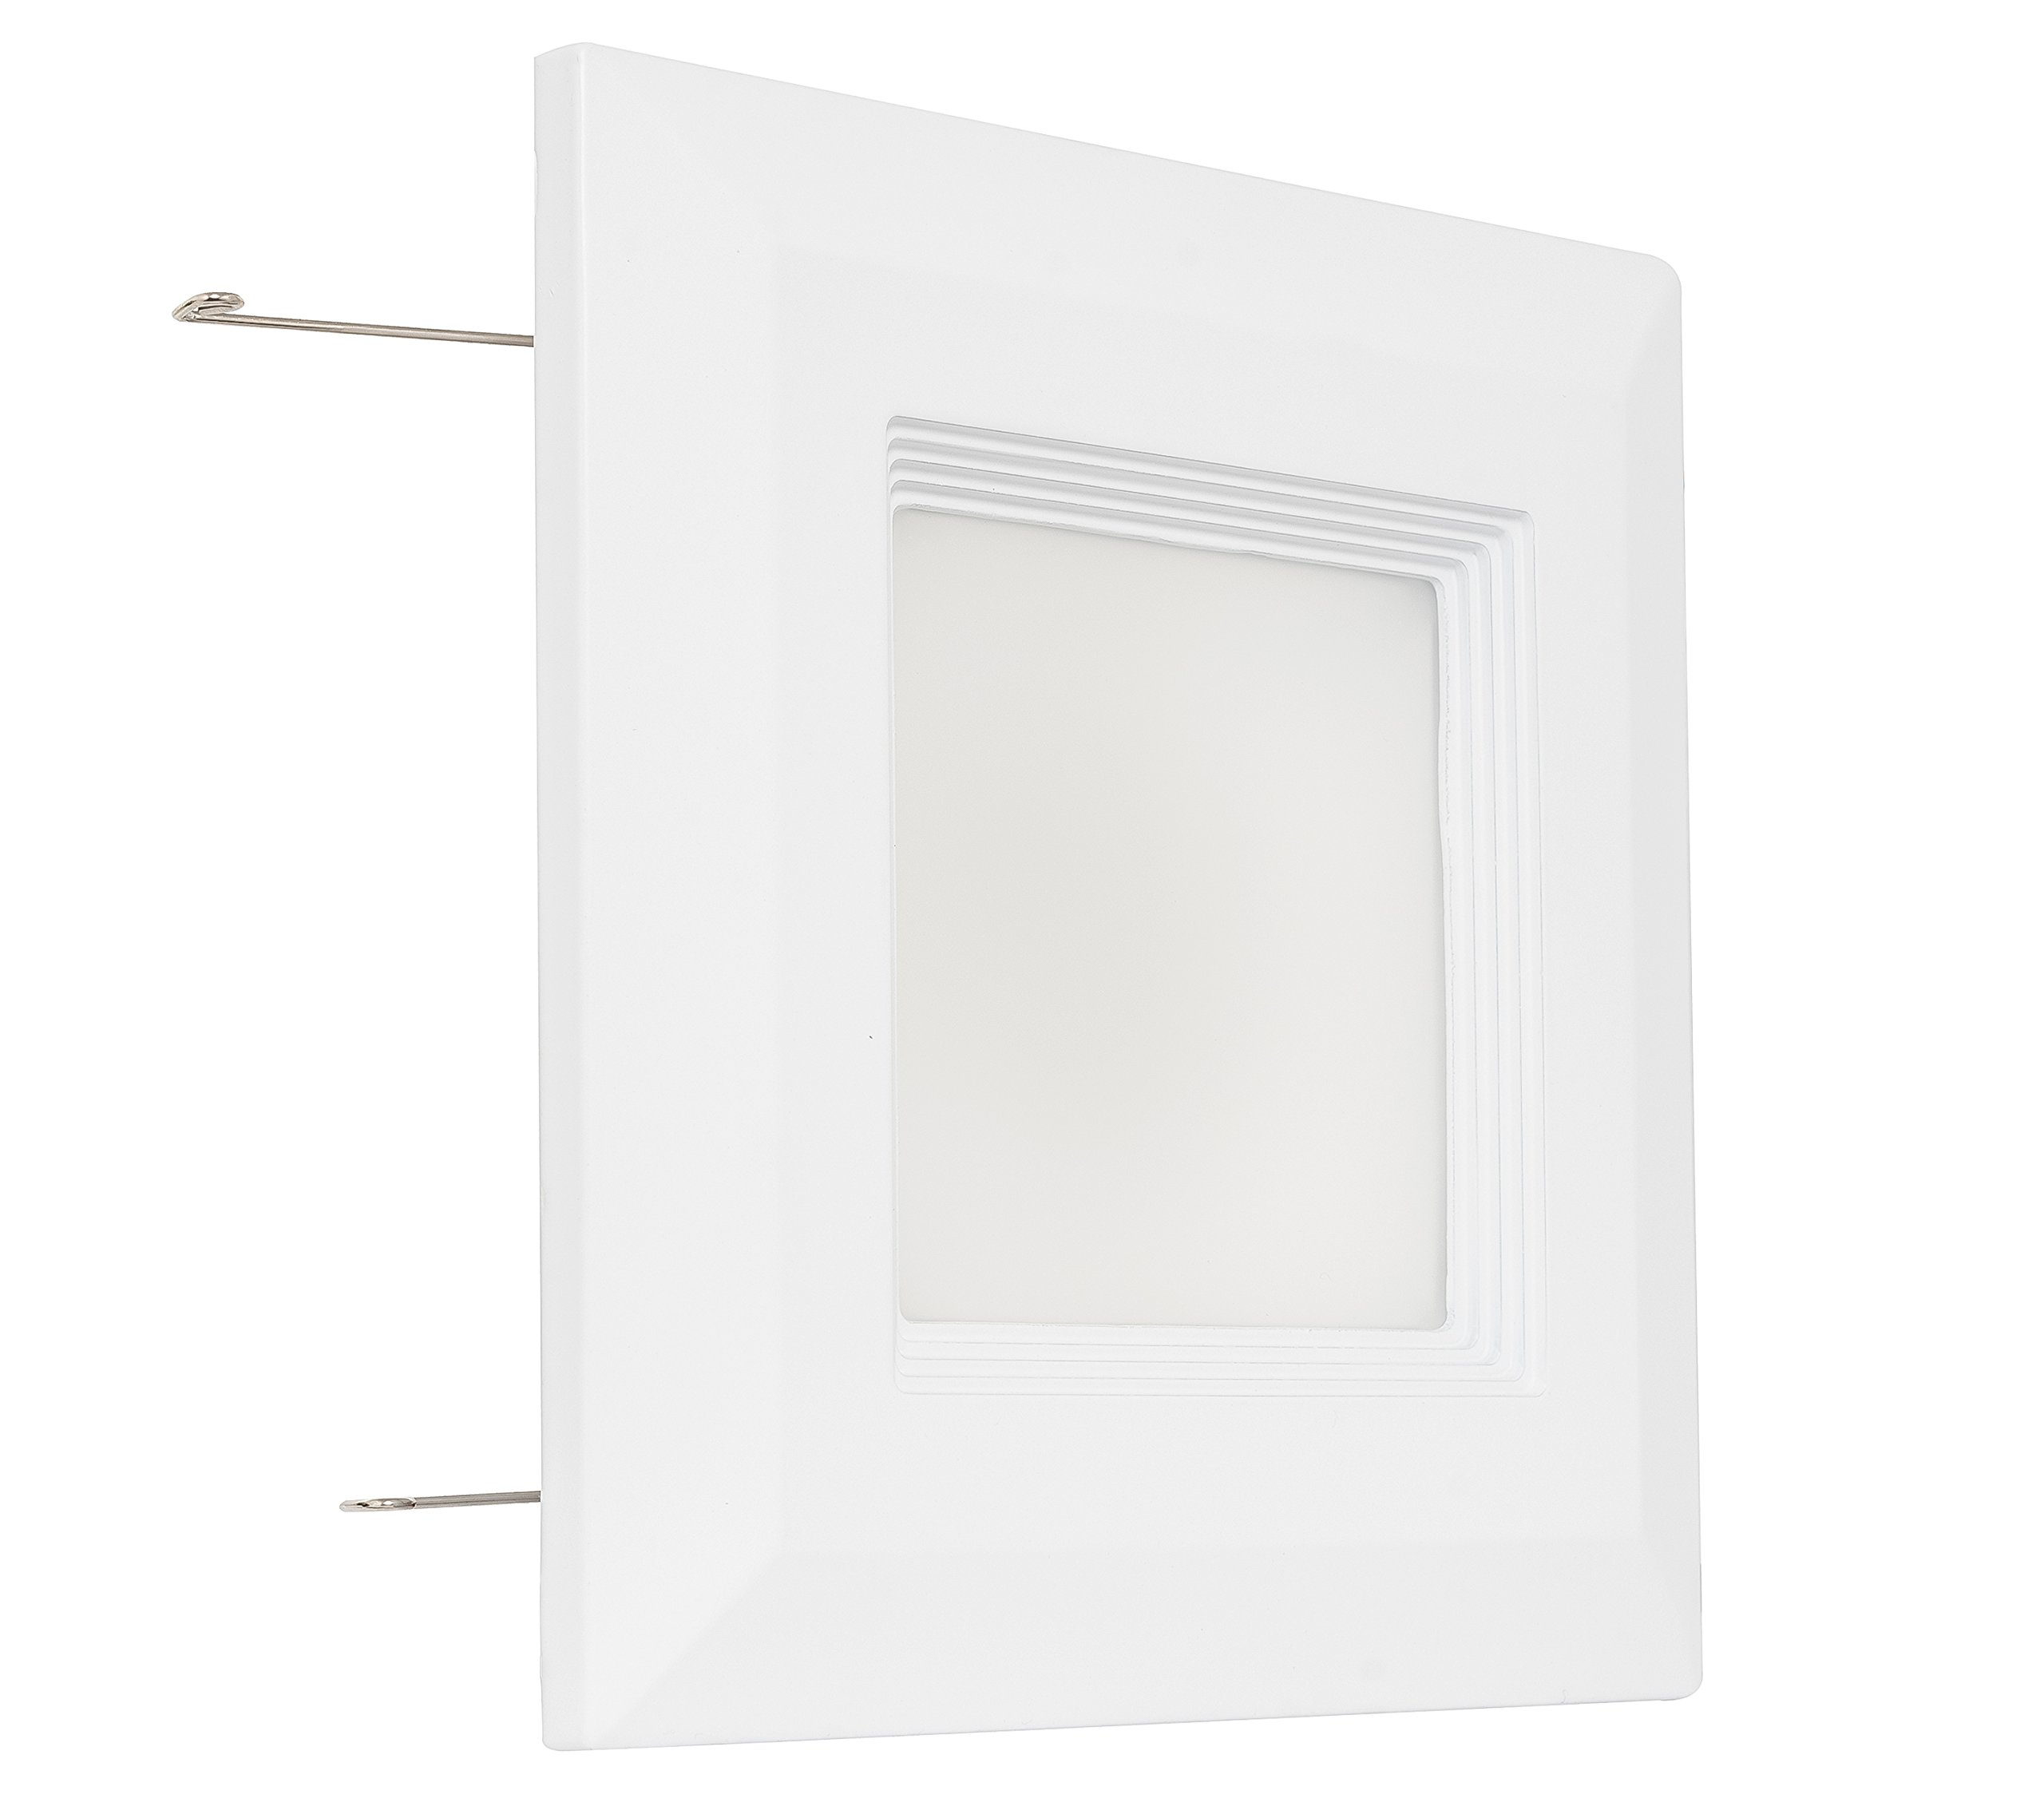 Westgate Lighting 9 Watt 4'' inch Recessed Lighting Kit with Baffle Trim - Square Shaped LED Retrofit Downlight - Premium Dimmable Light Fixture - Best Ceiling Lights - (1 Pack, 3000K Soft White)